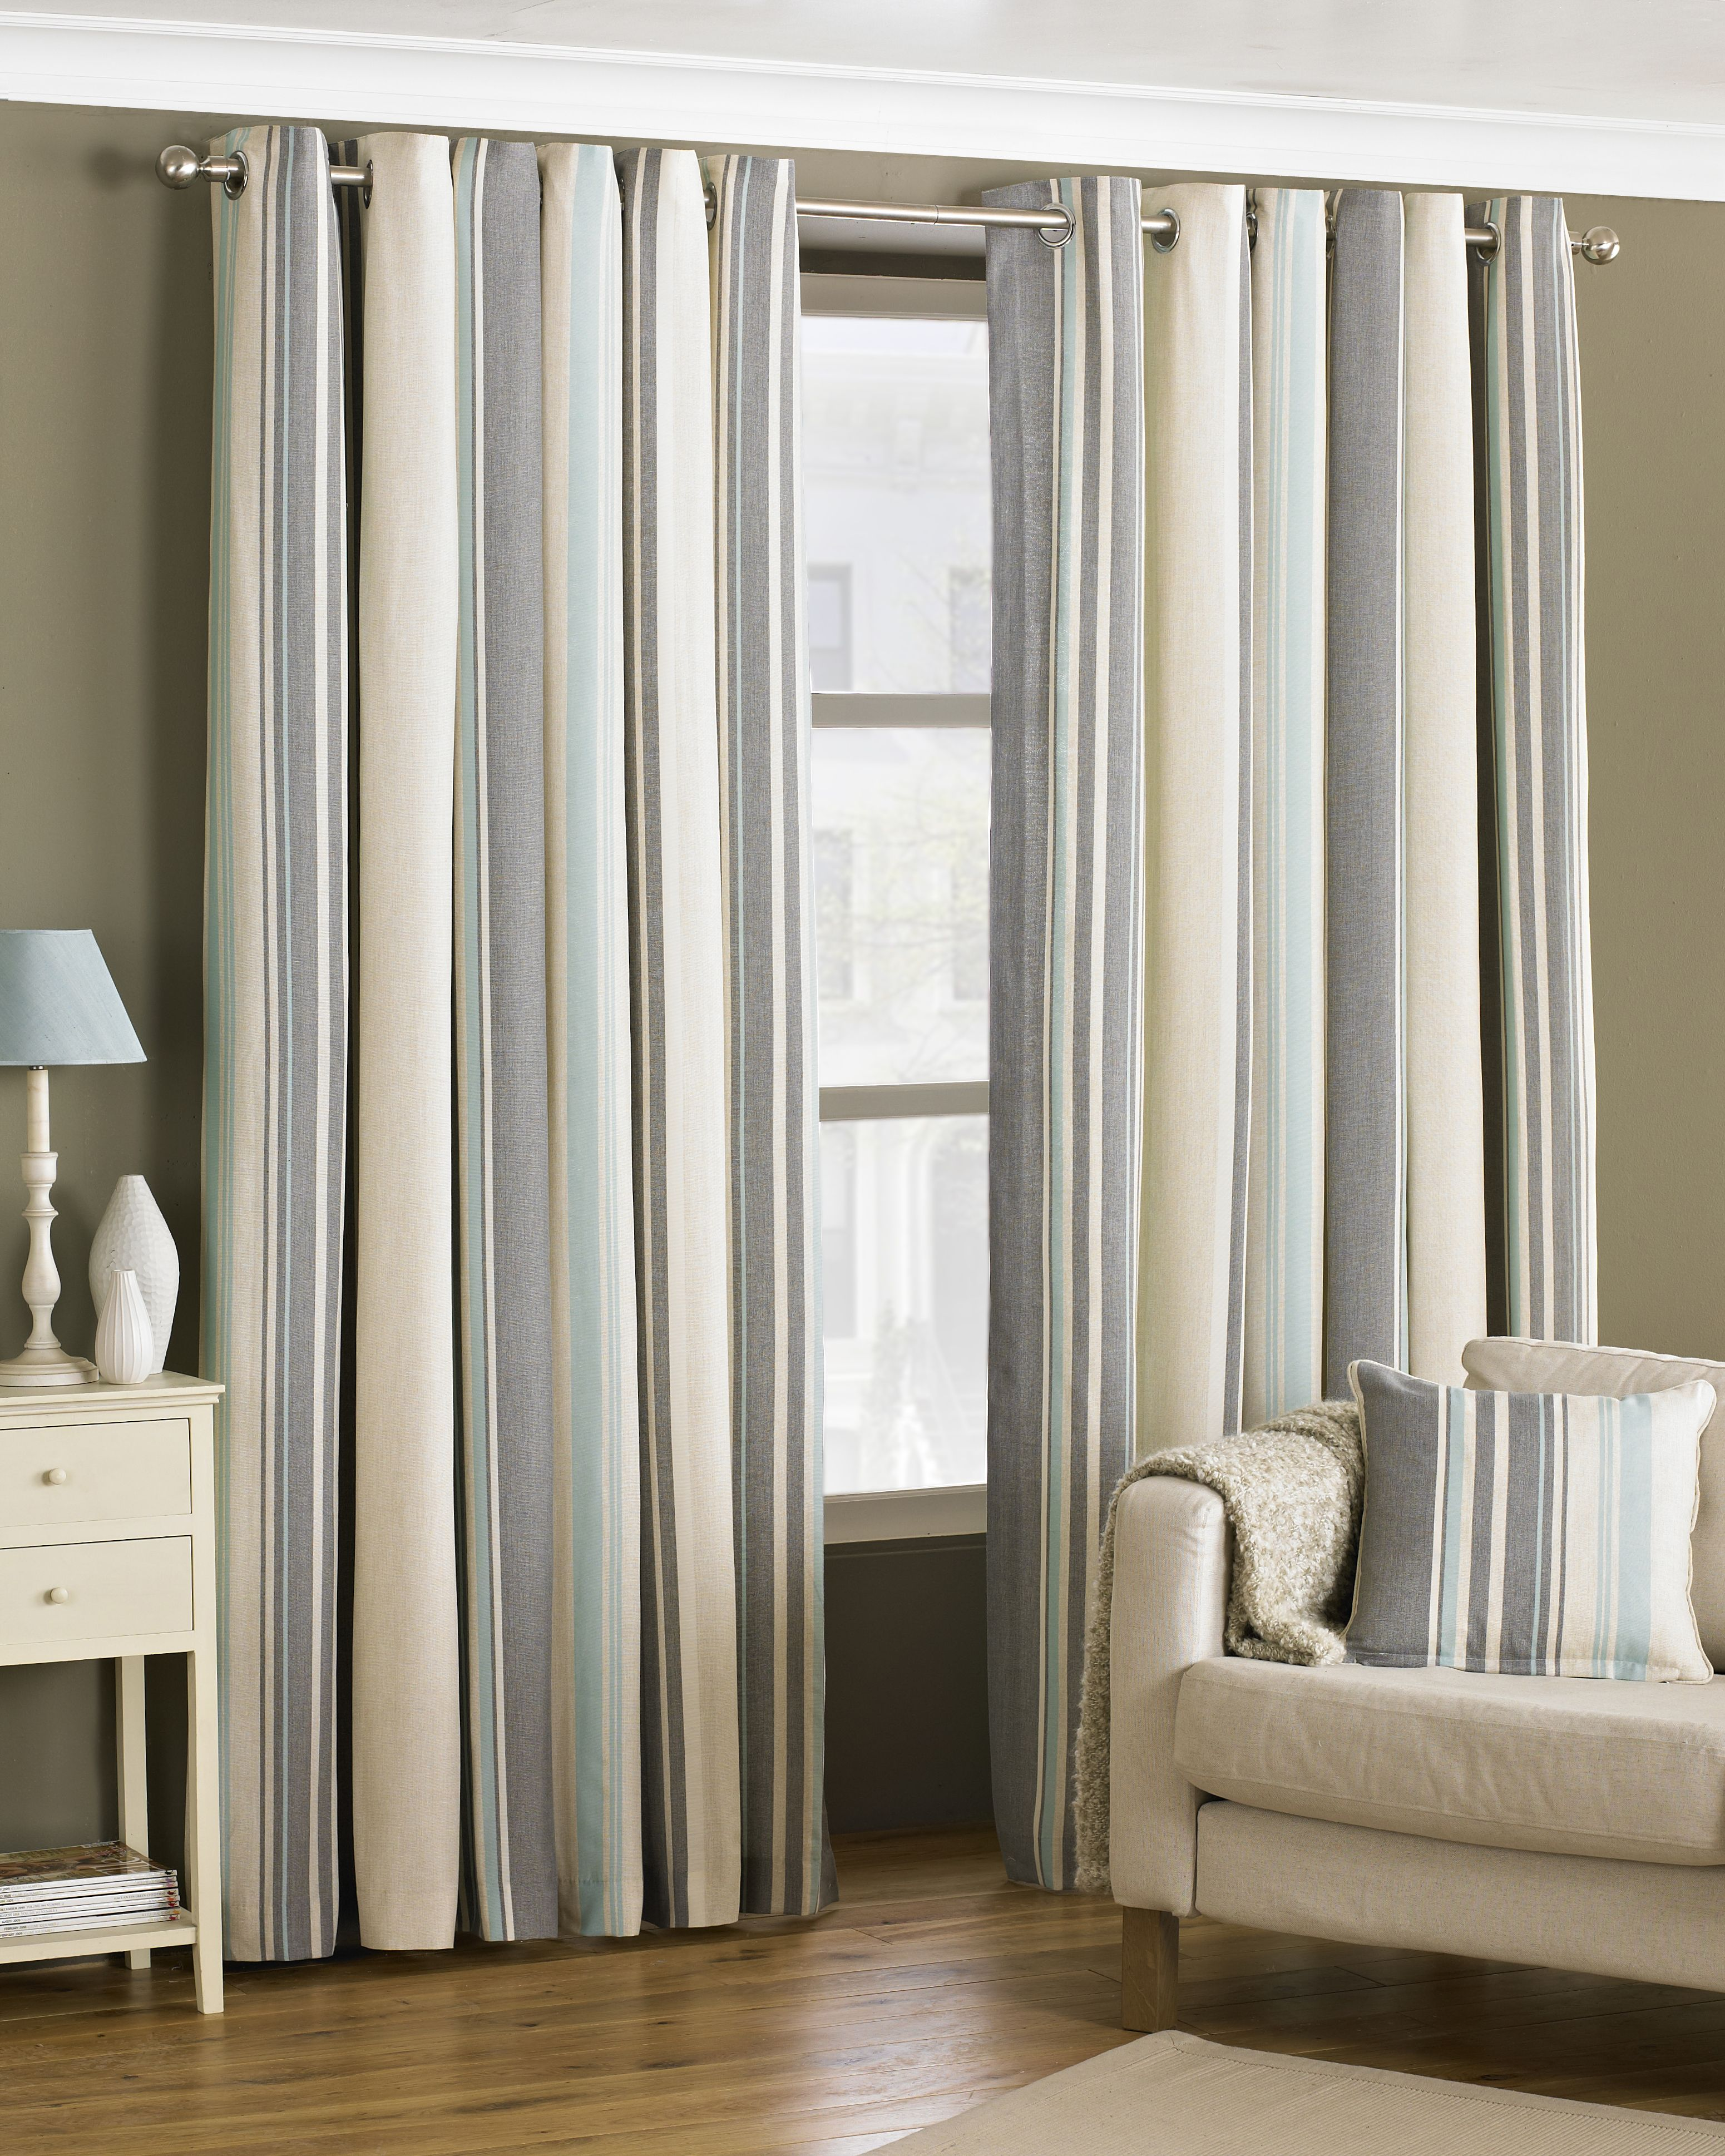 Broadway Striped Eyelet Curtains in Duck Egg Blue